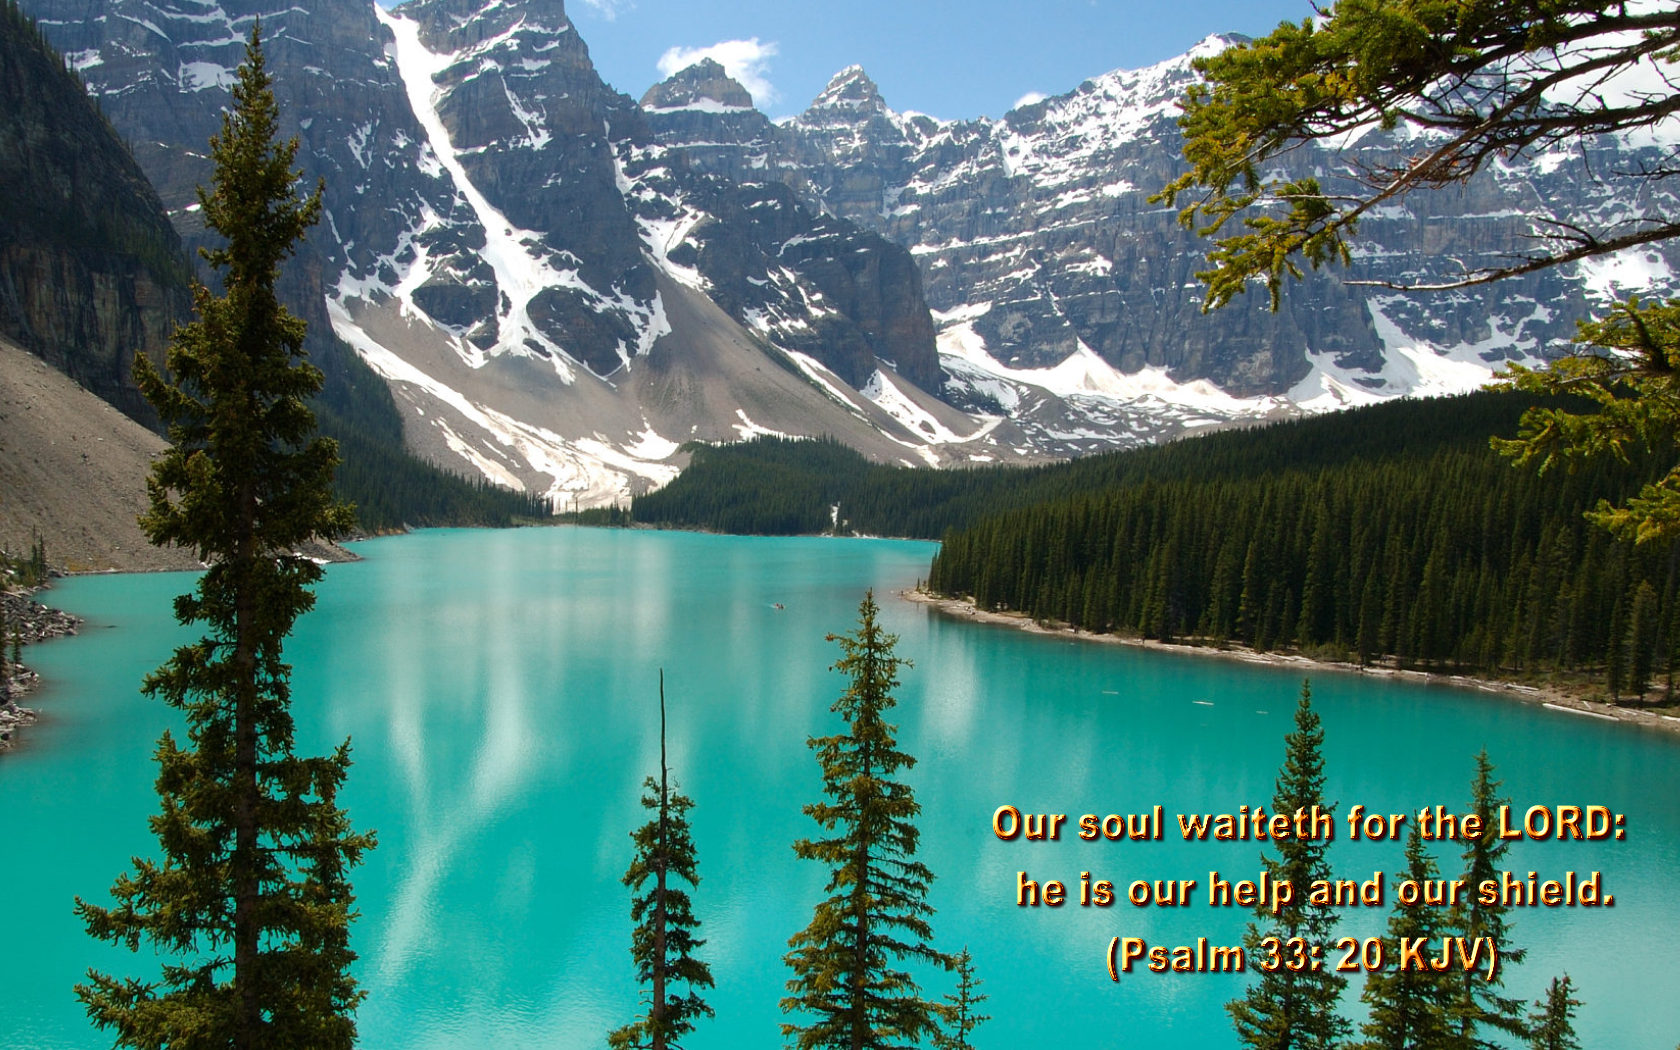 bible wallpapers set 04 is the fourth set of desktop wallpapers with 1680x1050